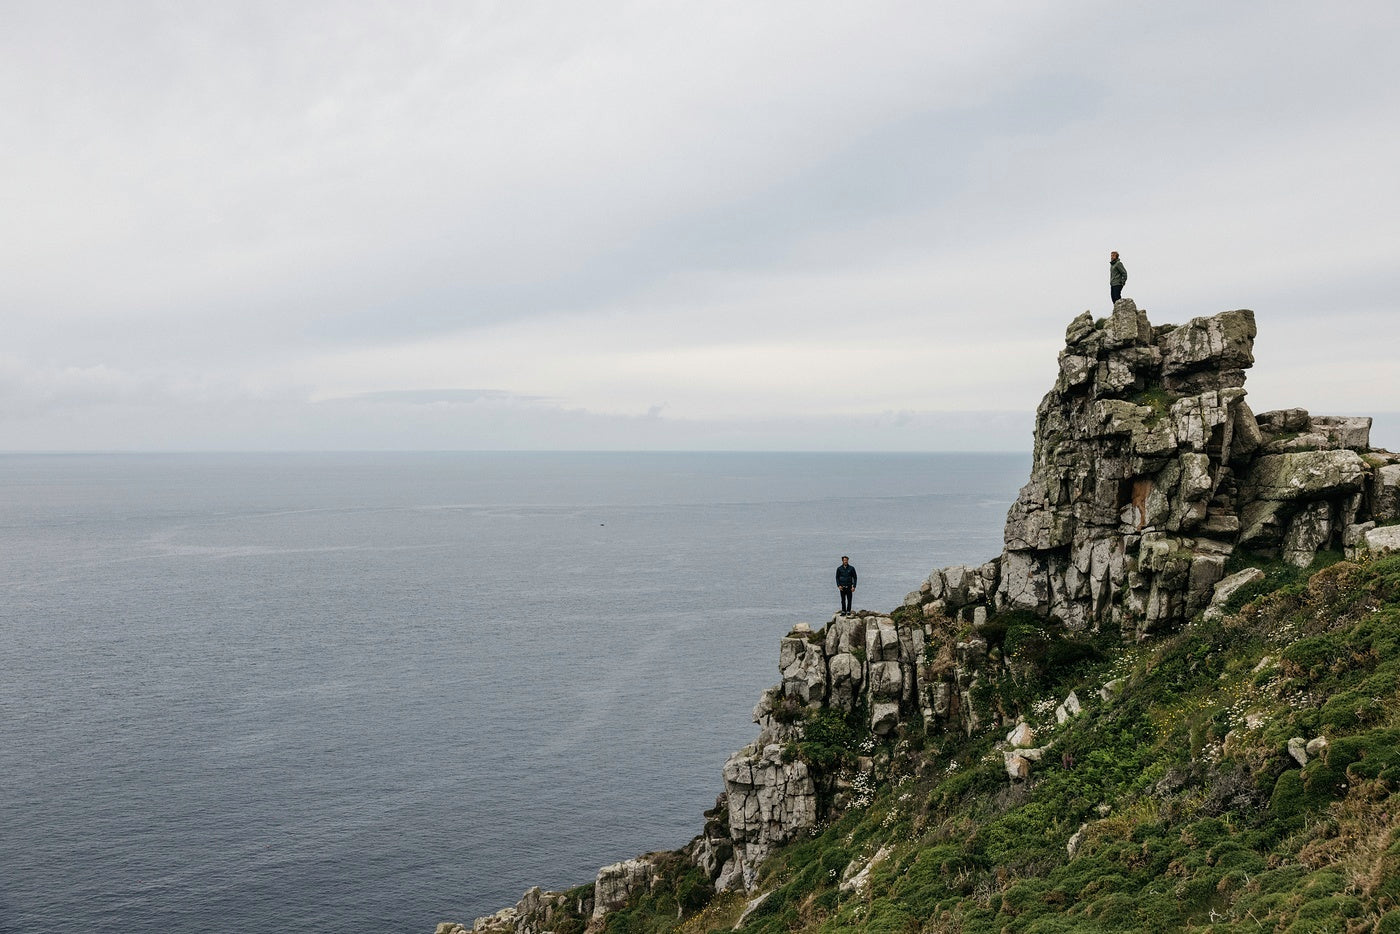 Two silhouettes stand on a rocky Cornish outcrop above the sea